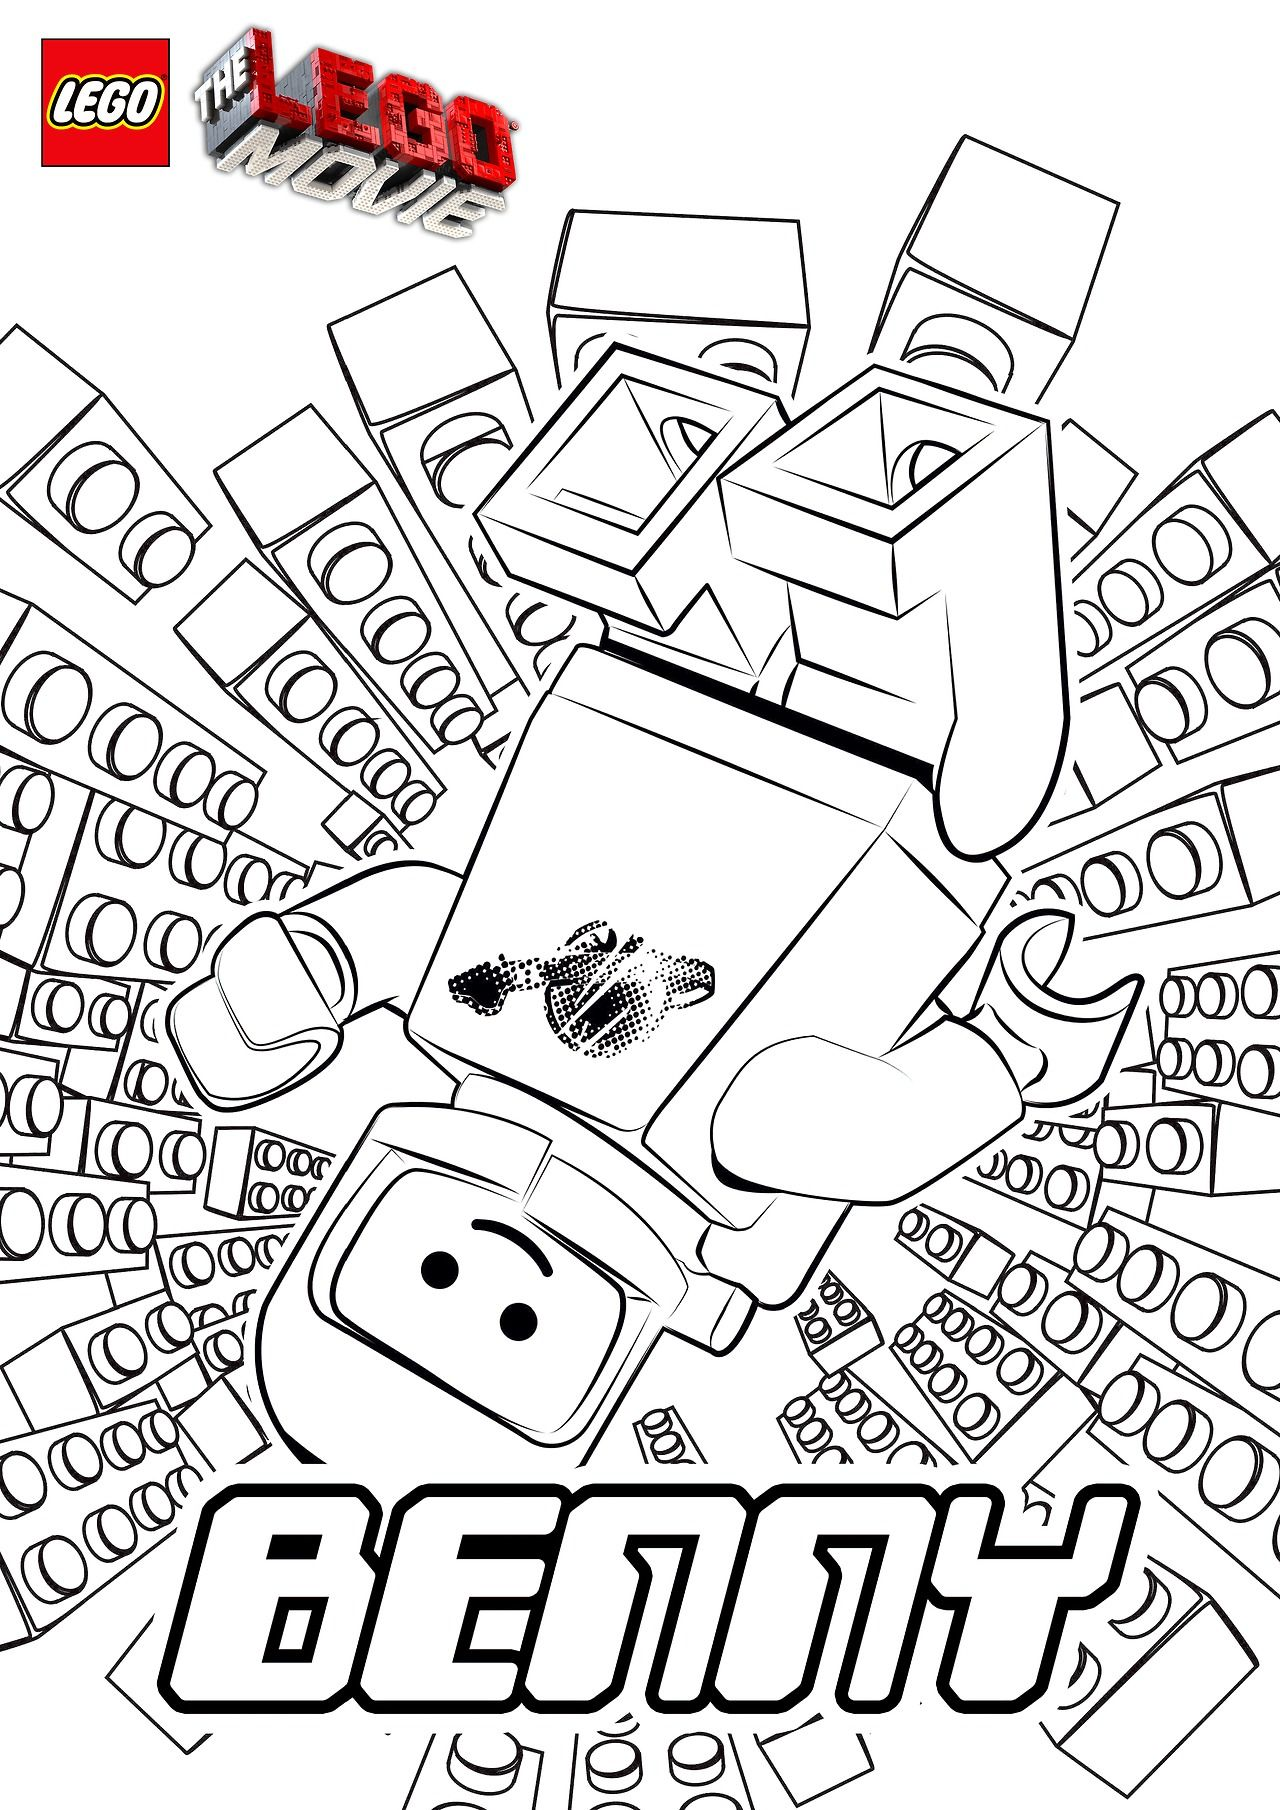 Coloring Pages The Lego Movie Coloring Page the lego movie coloring pages futpal com 1000 images about on pinterest coloring